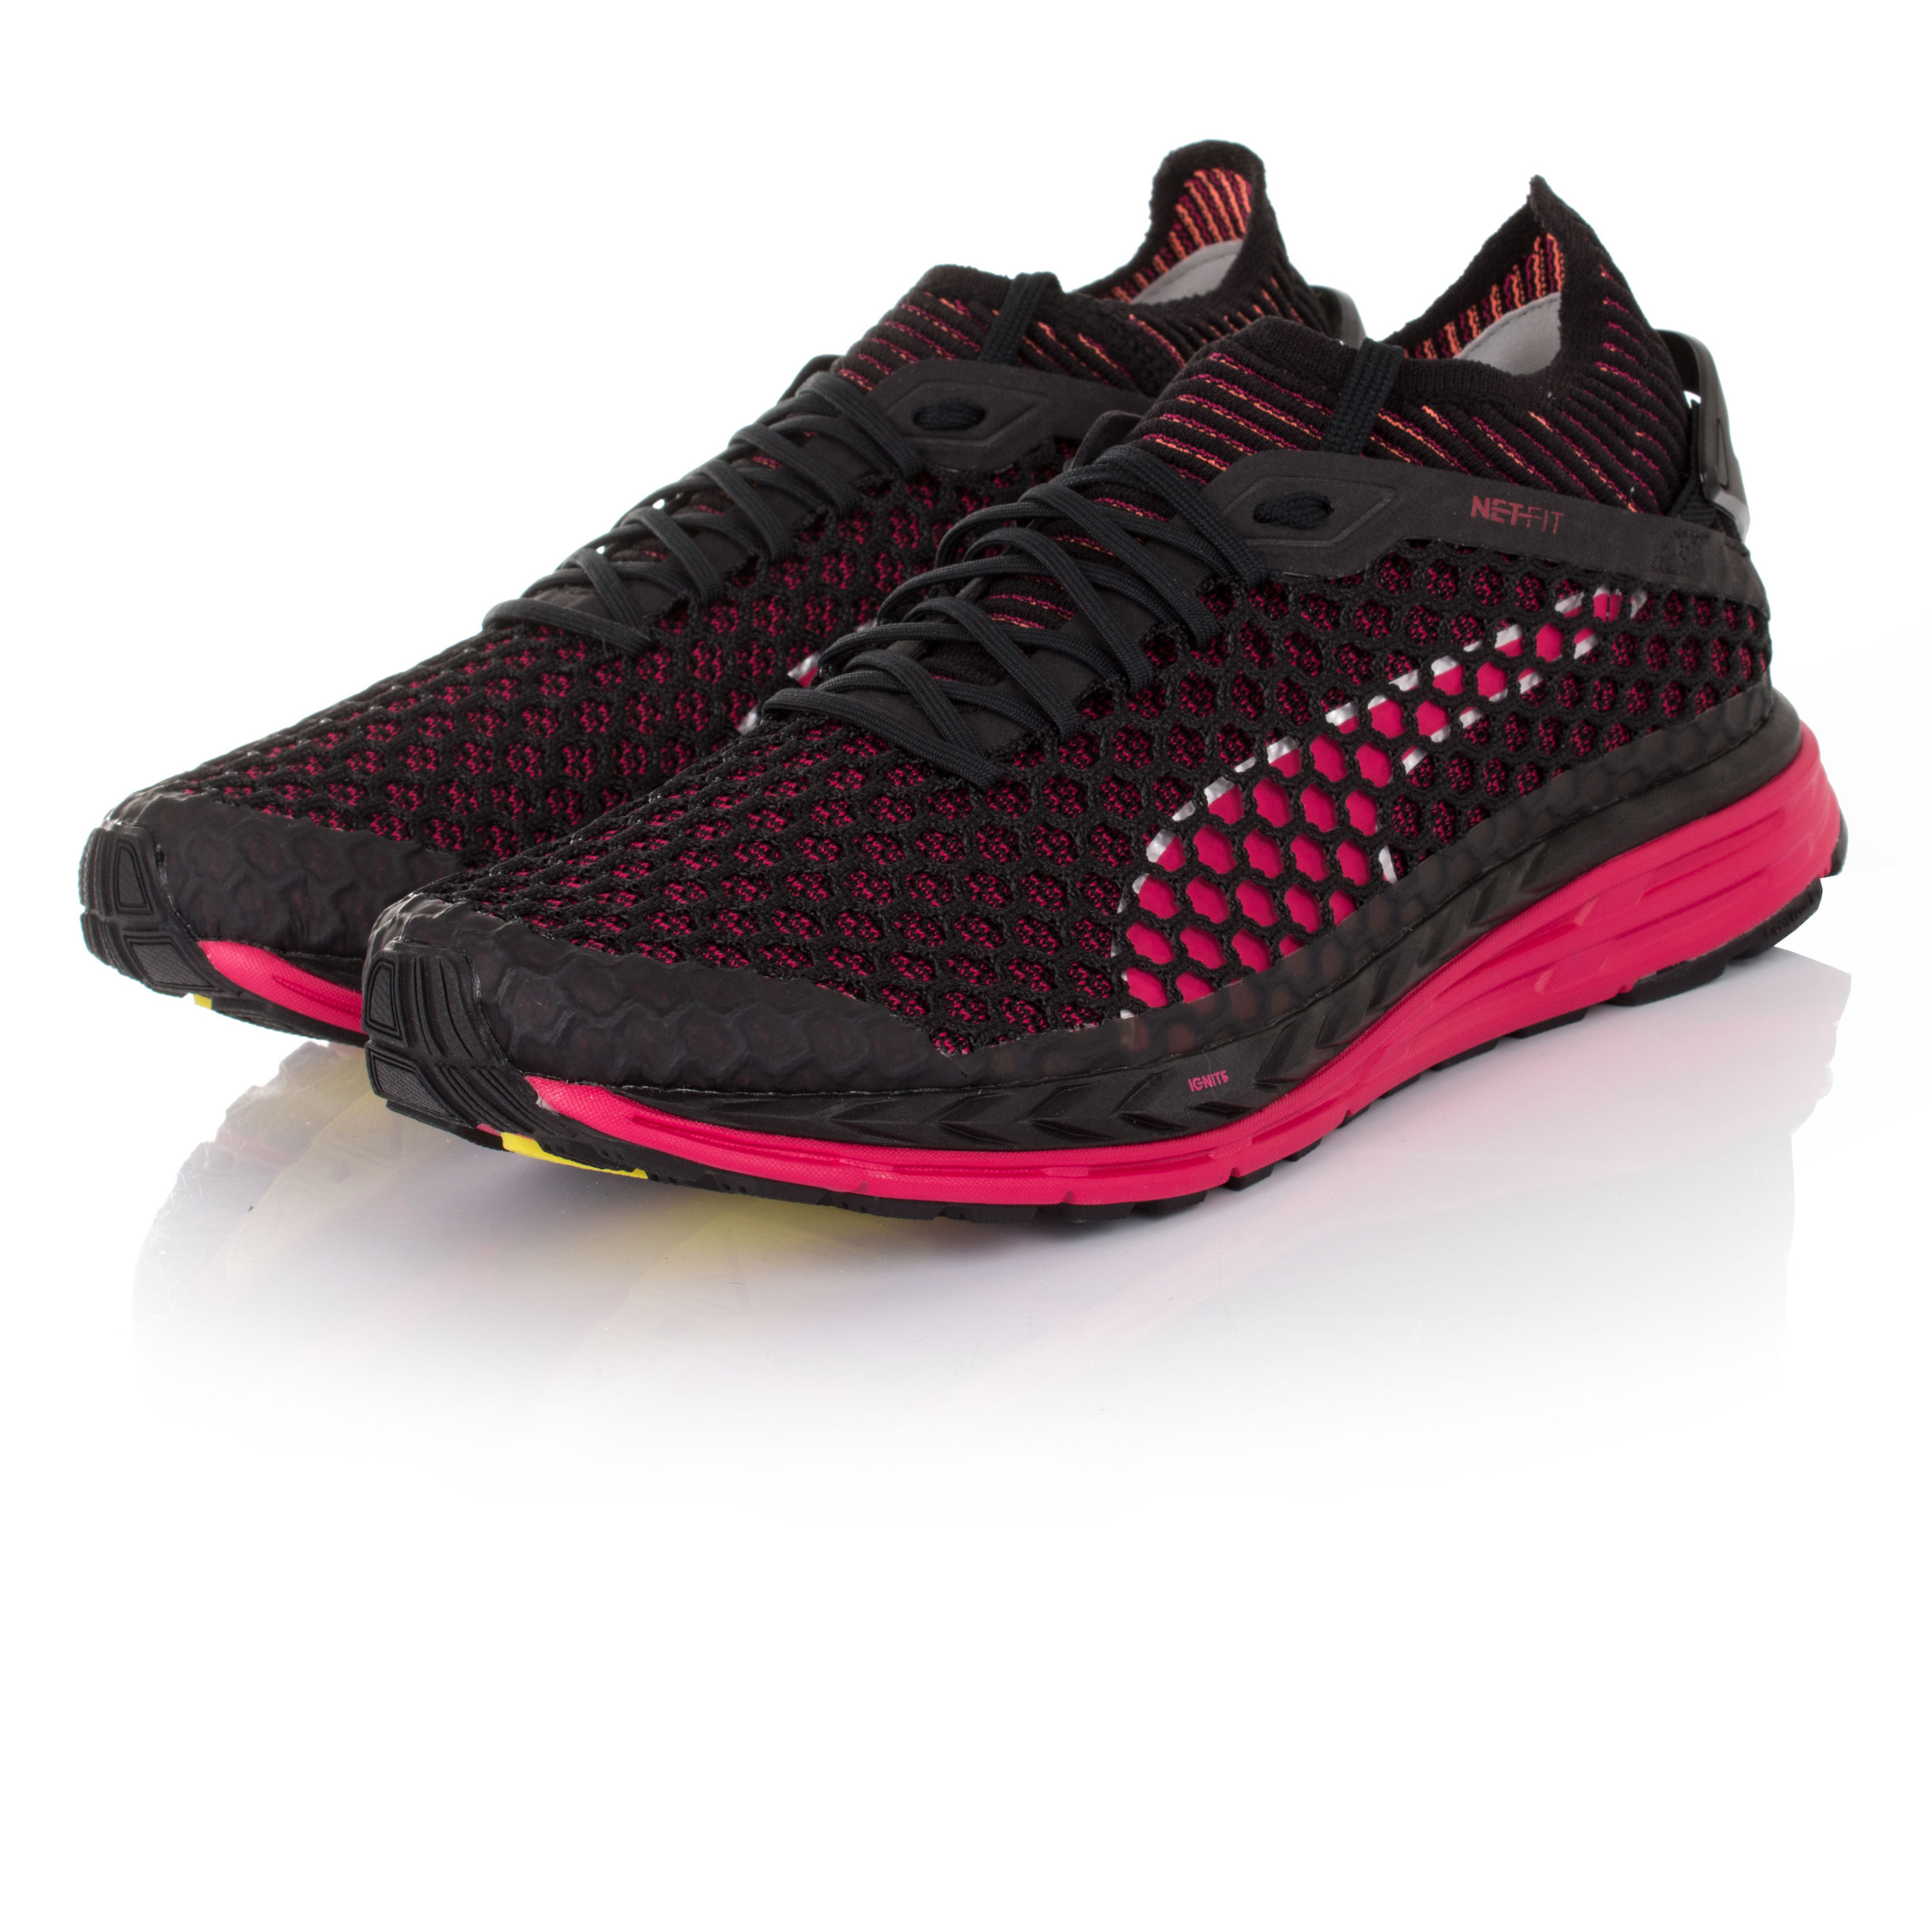 52f376dfdf3 PUMA SPEED IGNITE Netfit Womens Pink Black Running Sports Shoes Trainers